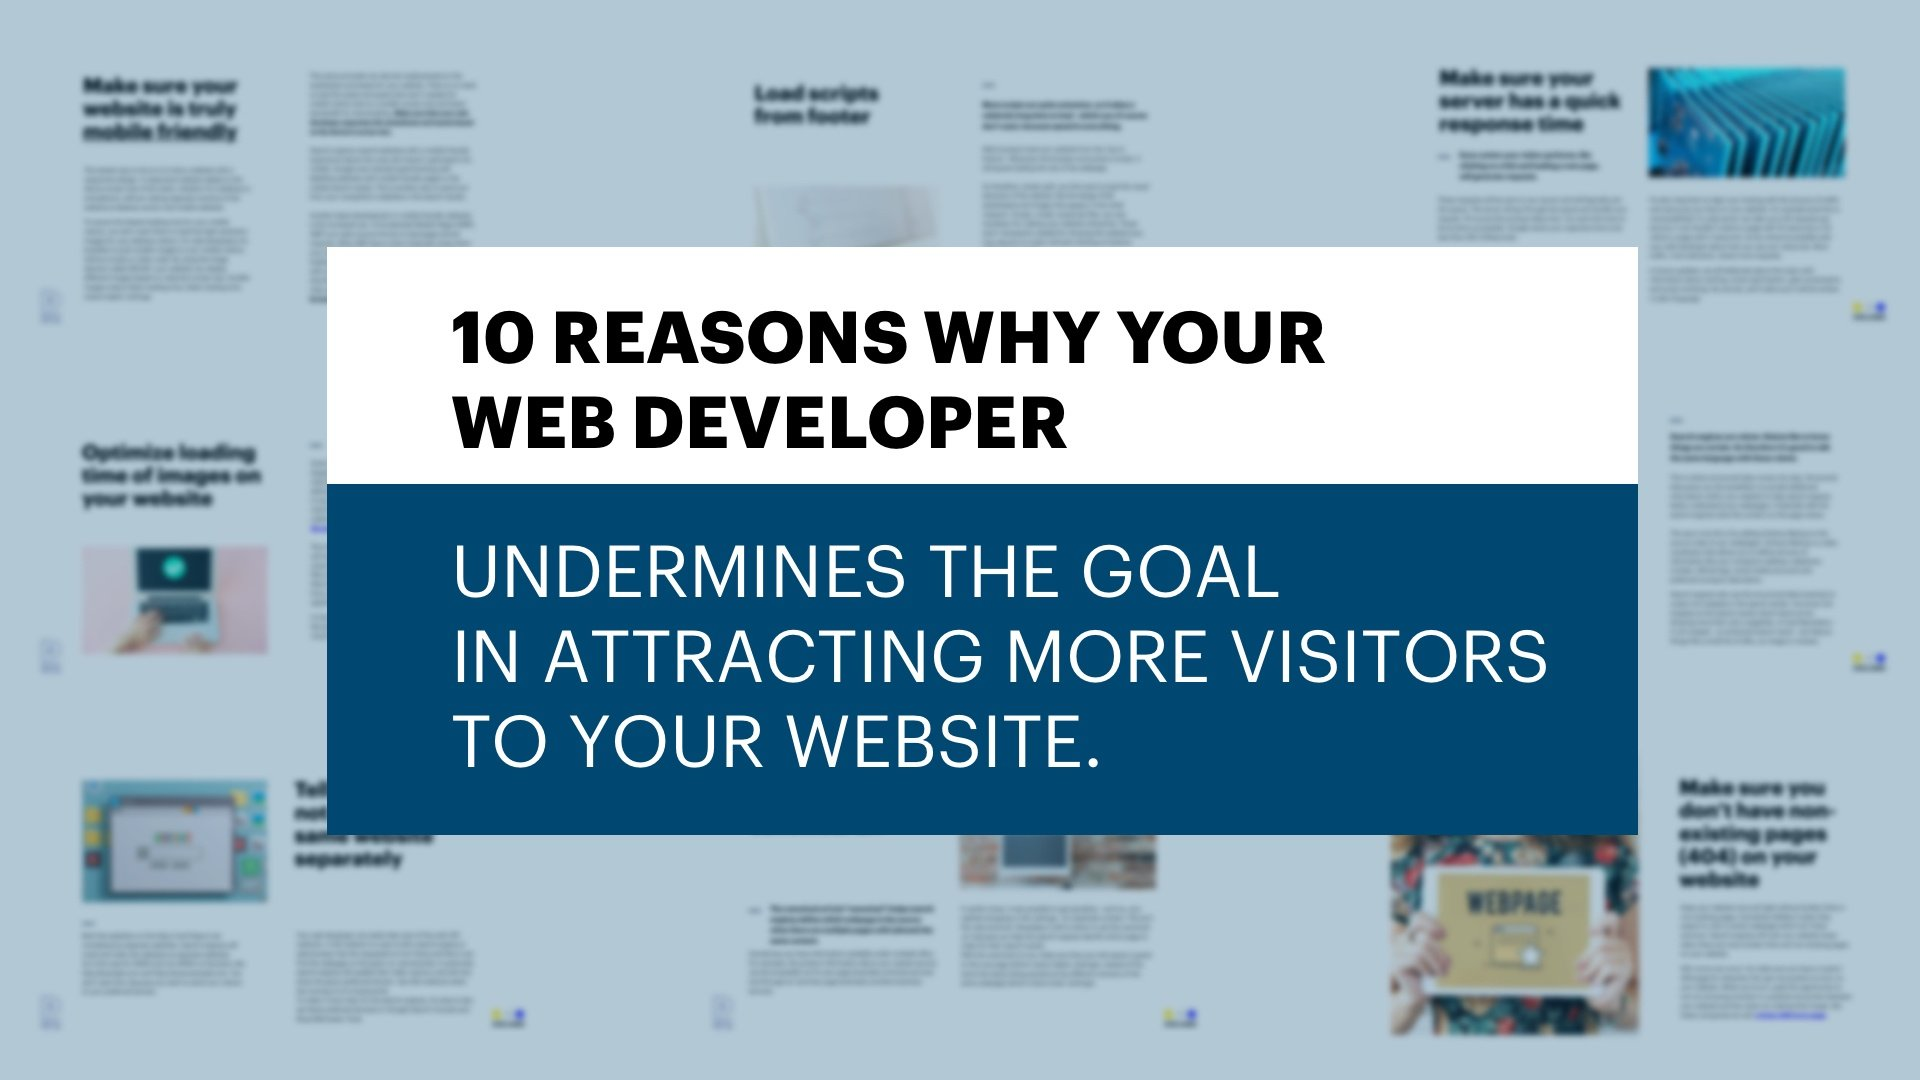 tip-cheat-sheet-attracting-more-visitors-to-website-2.jpg